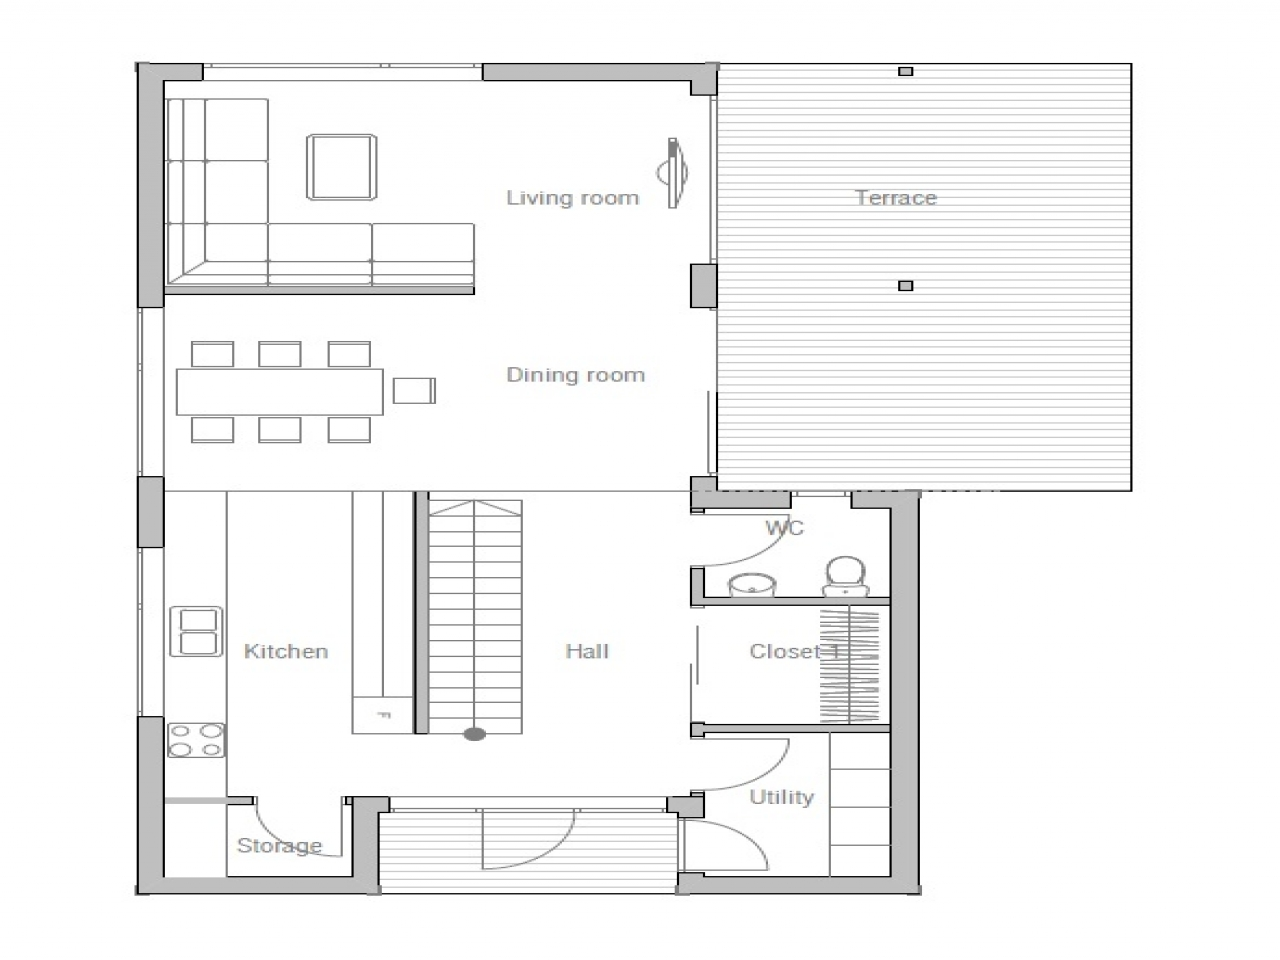 Small affordable house plans small two bedroom house plans for Affordable house plans